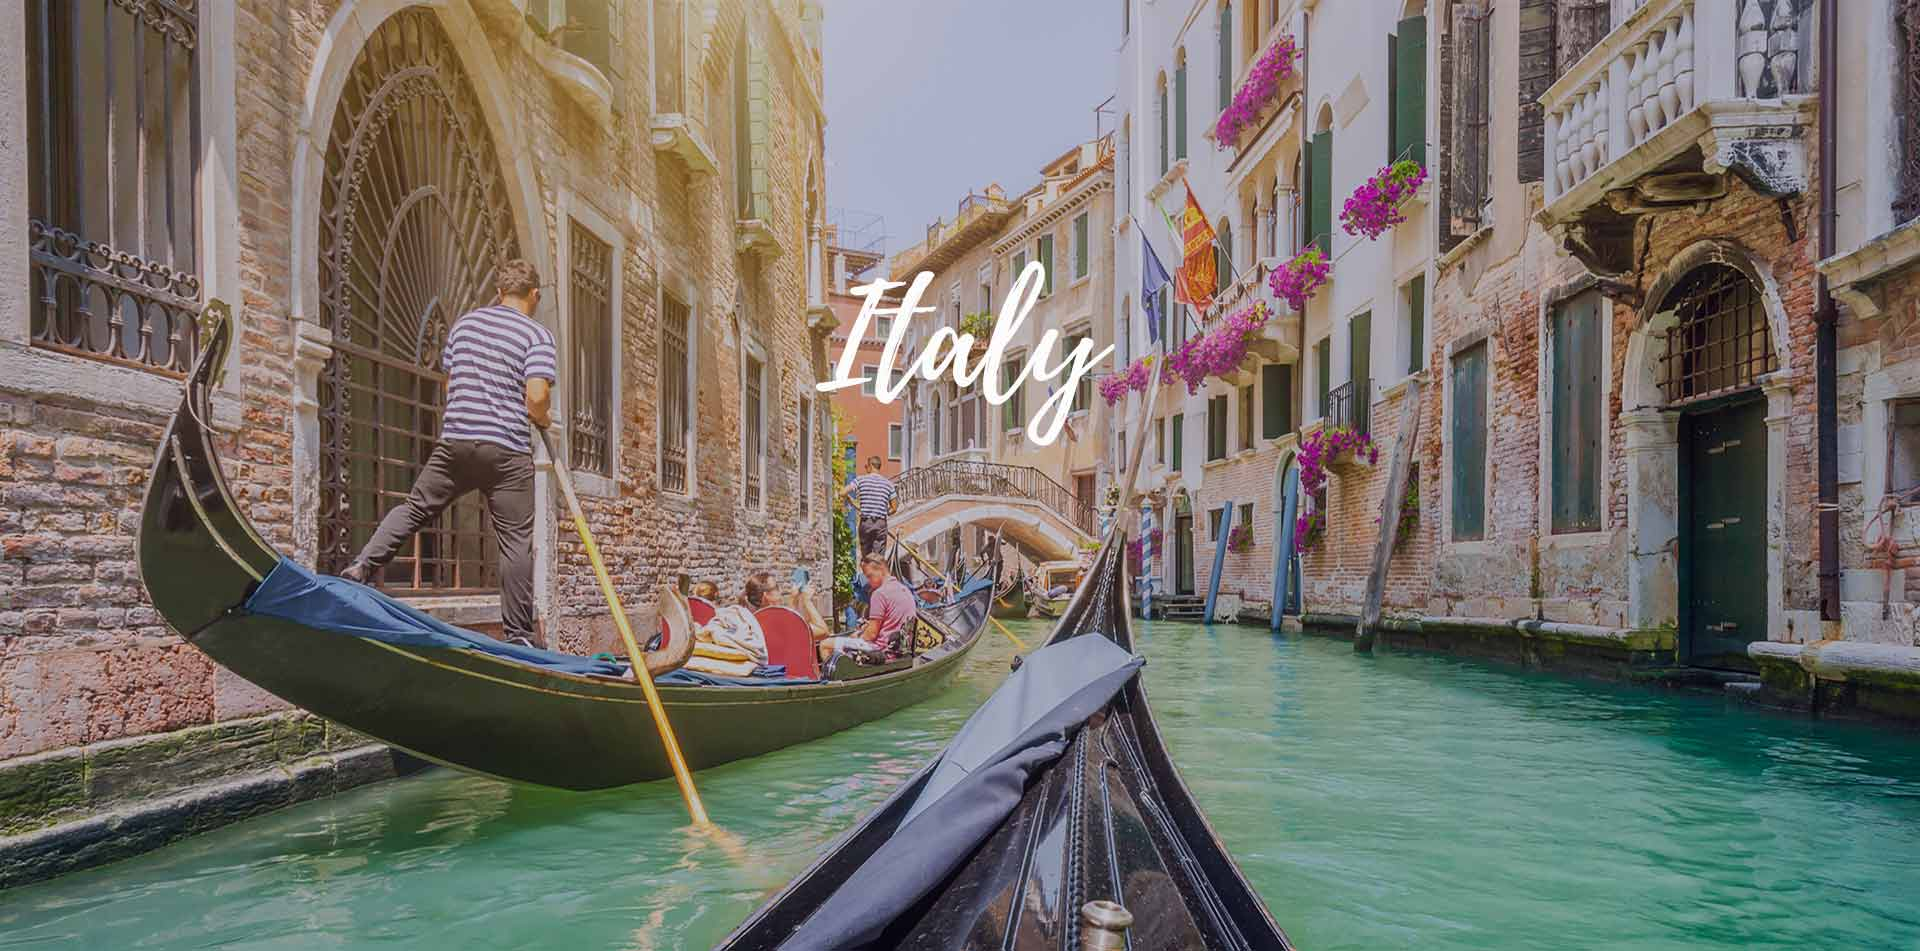 Europe Italy Venice romantic gondola ride beautiful aqua canal old buildings colorful flowers - luxury vacation destinations